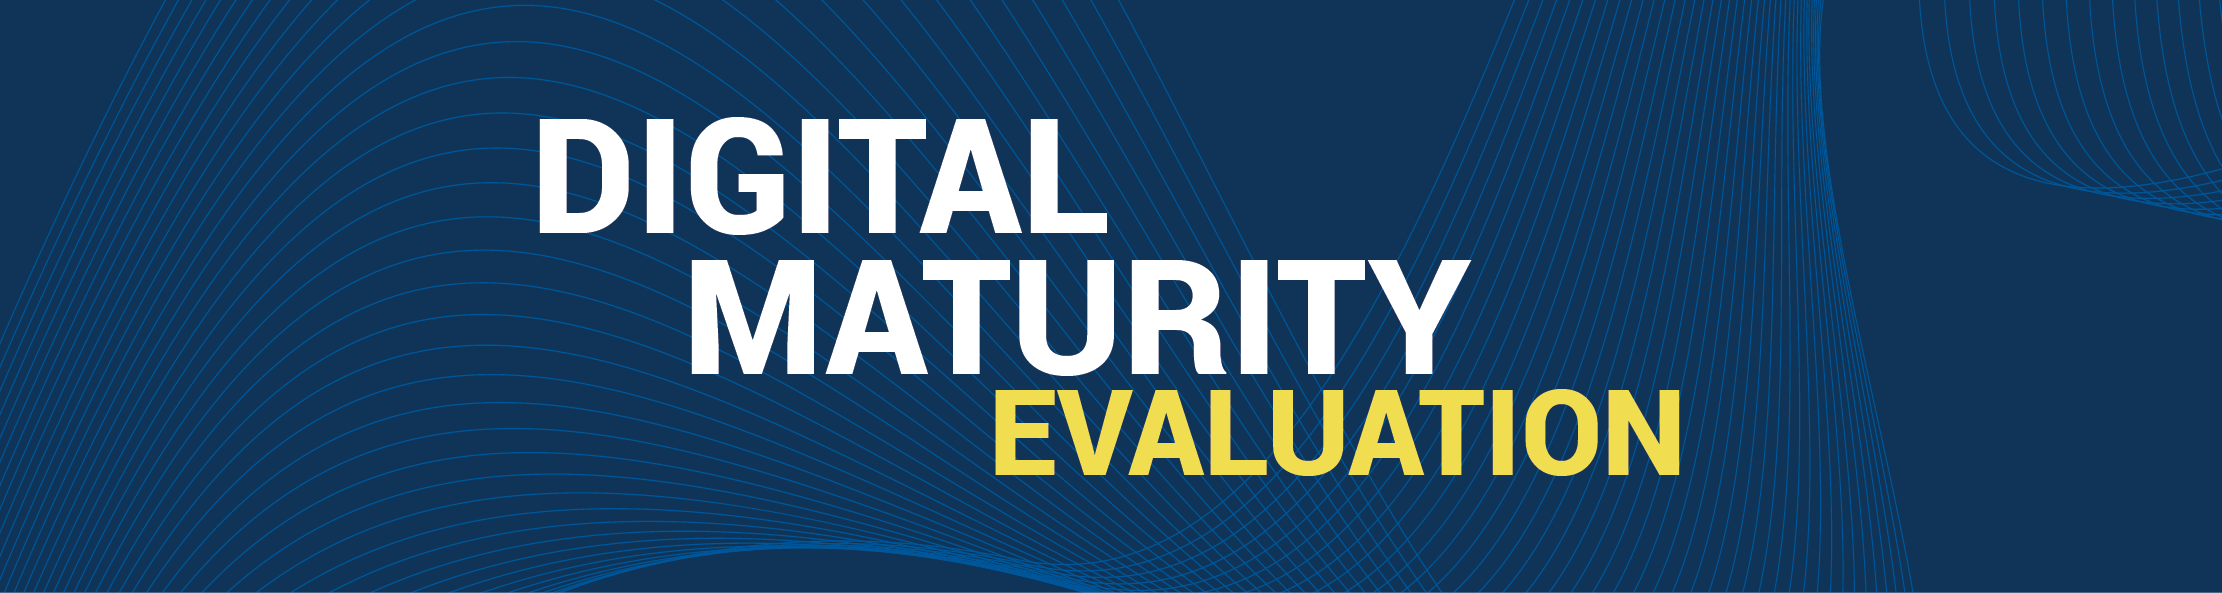 Digital Maturity Evaluation